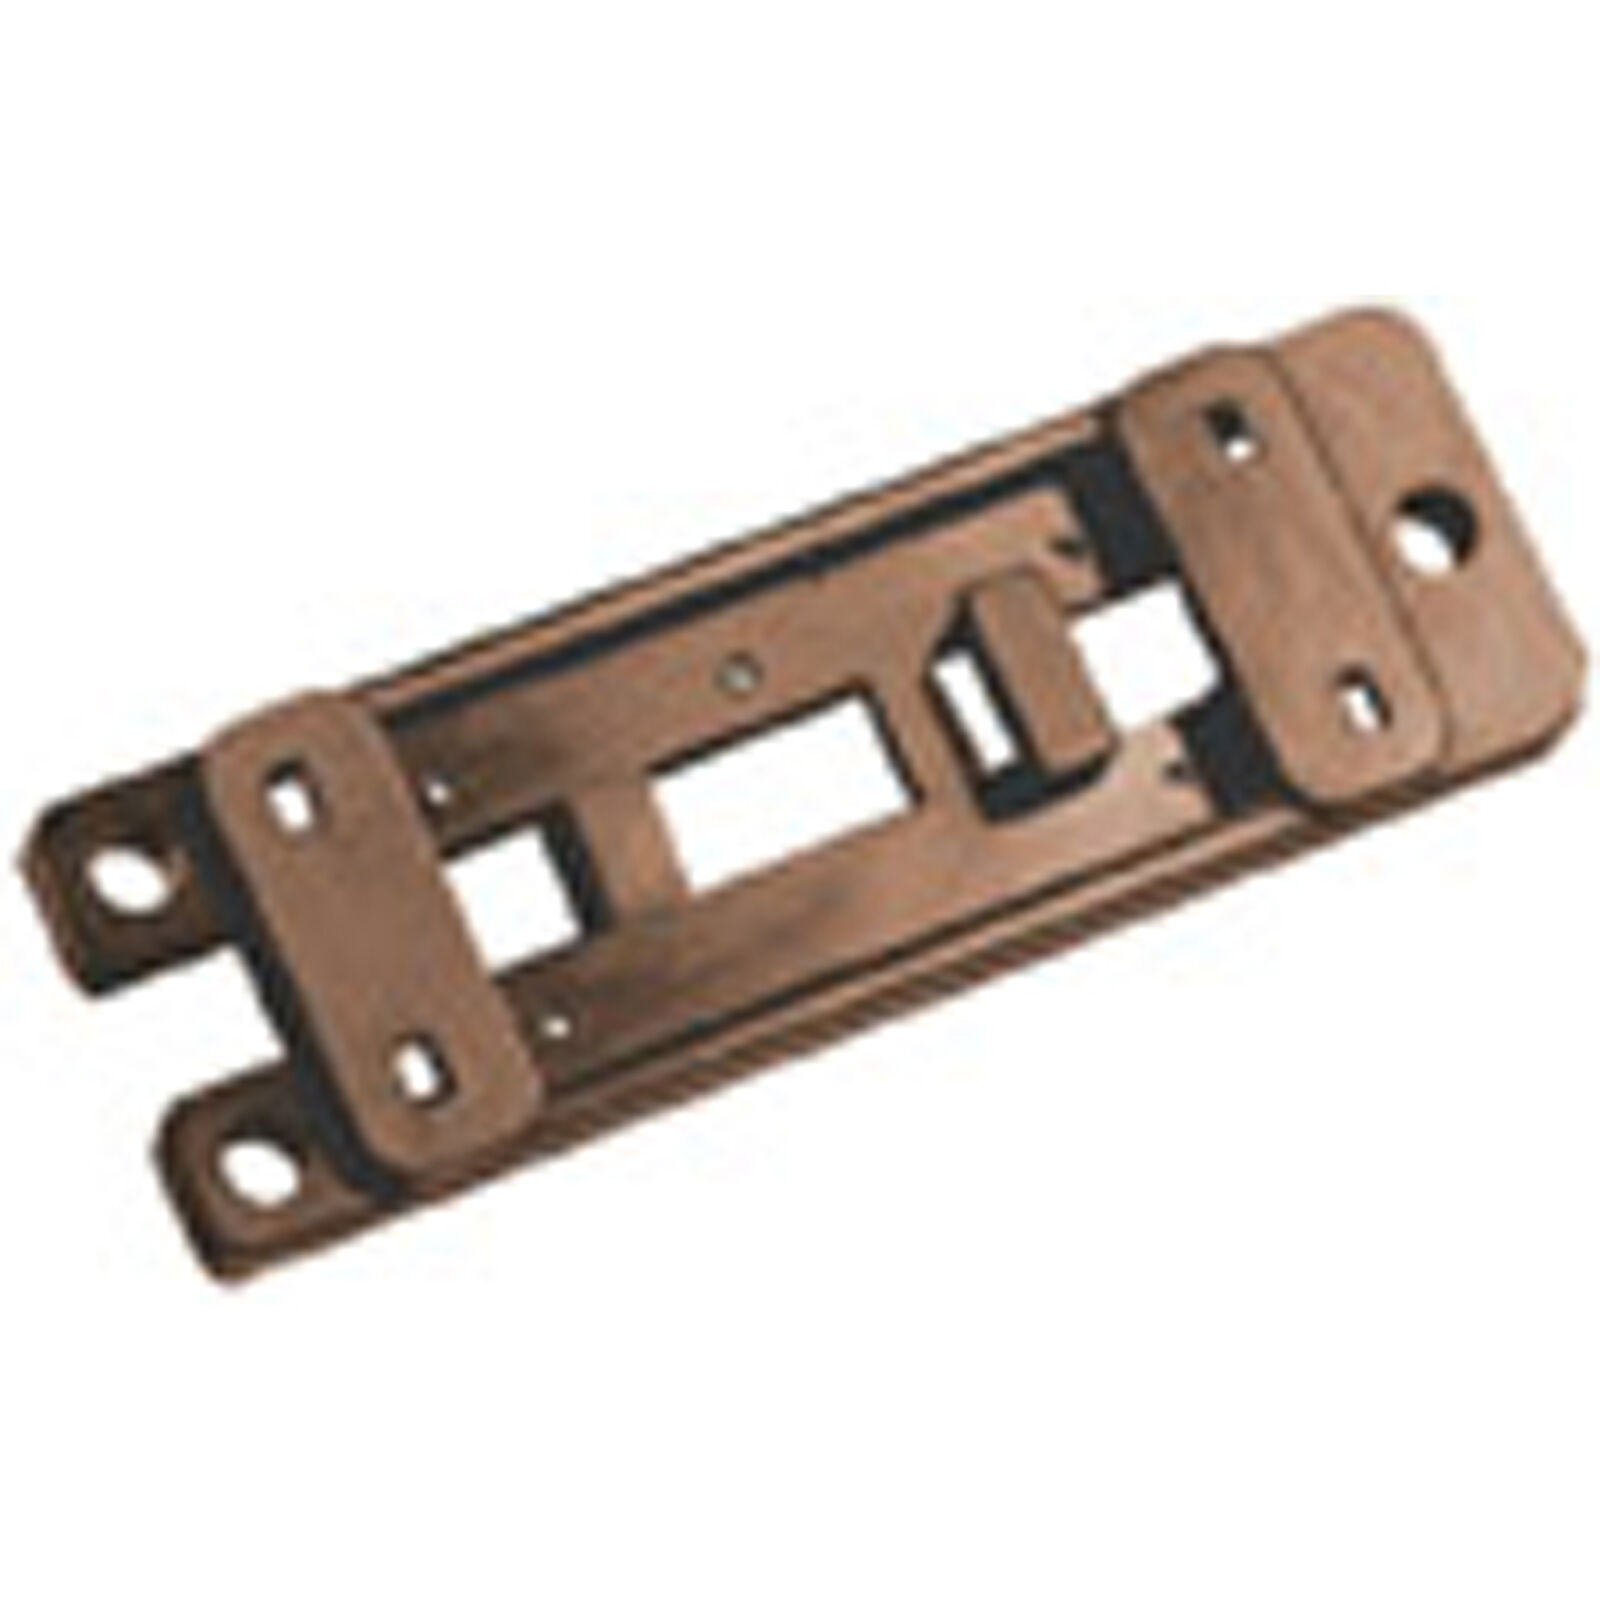 Mounting Plate, PL10 (5)